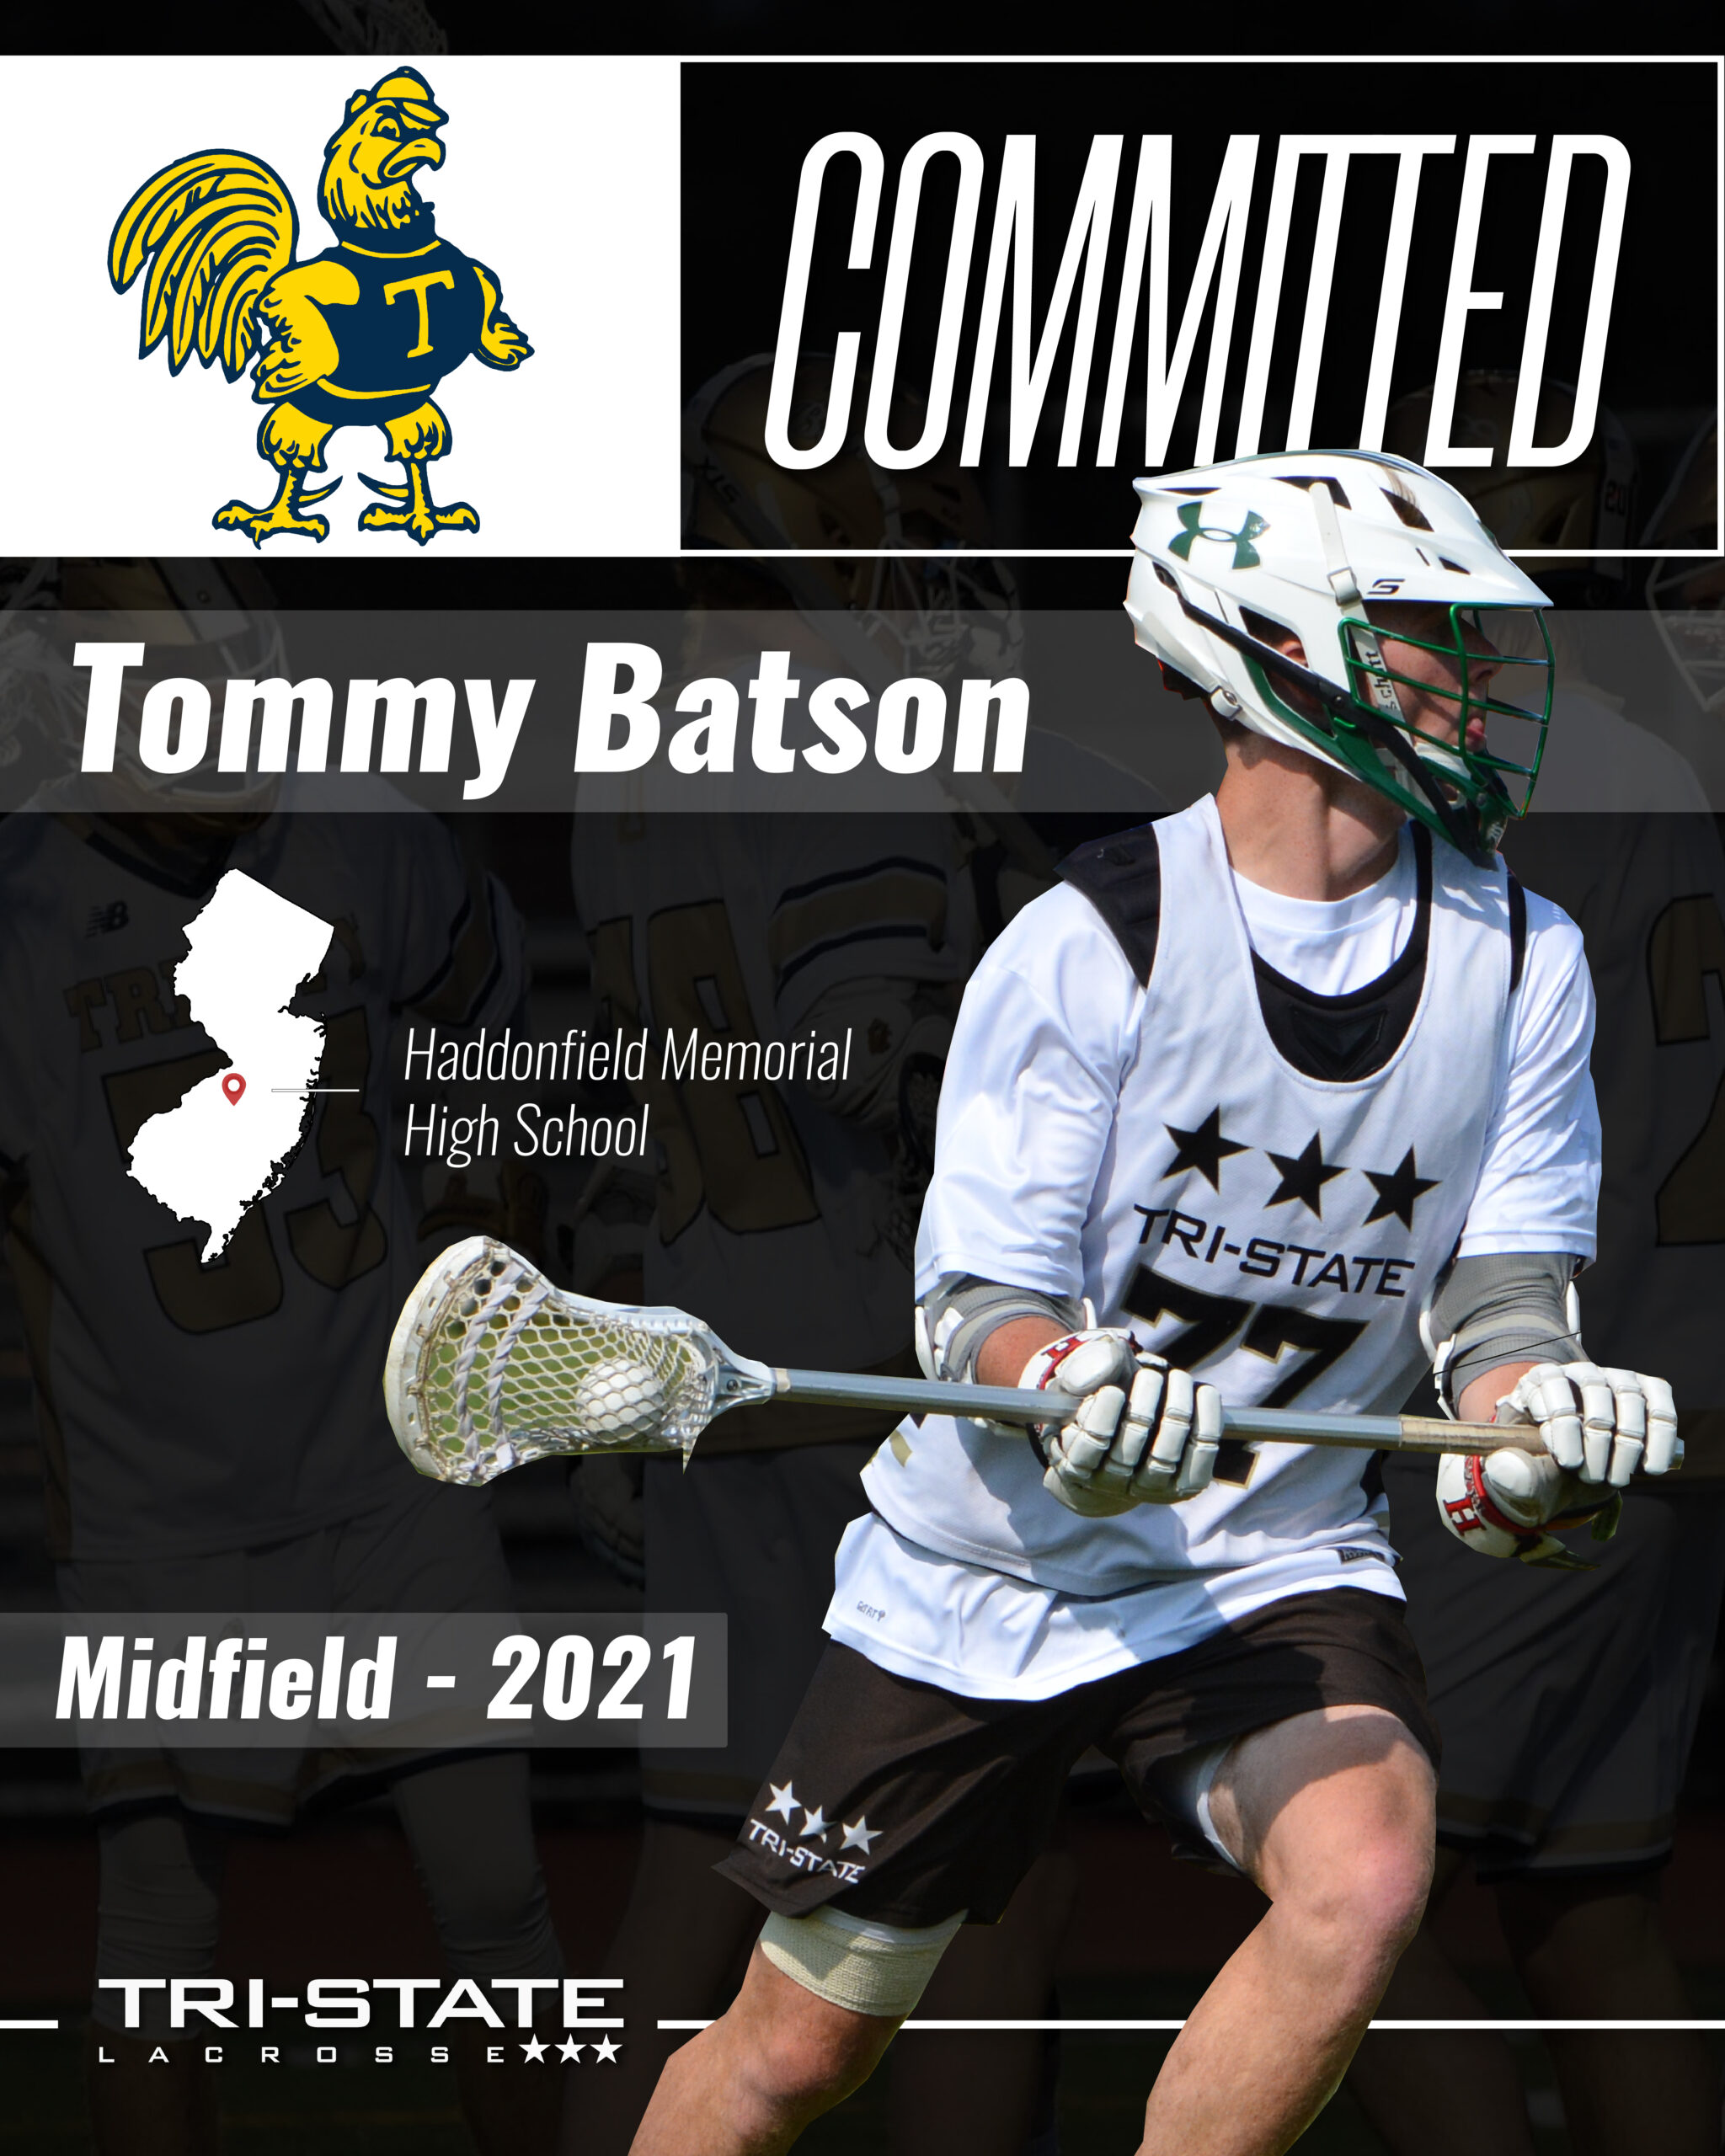 Tommy Batson - Haddonfield - Trinity College Football and Lacrosse